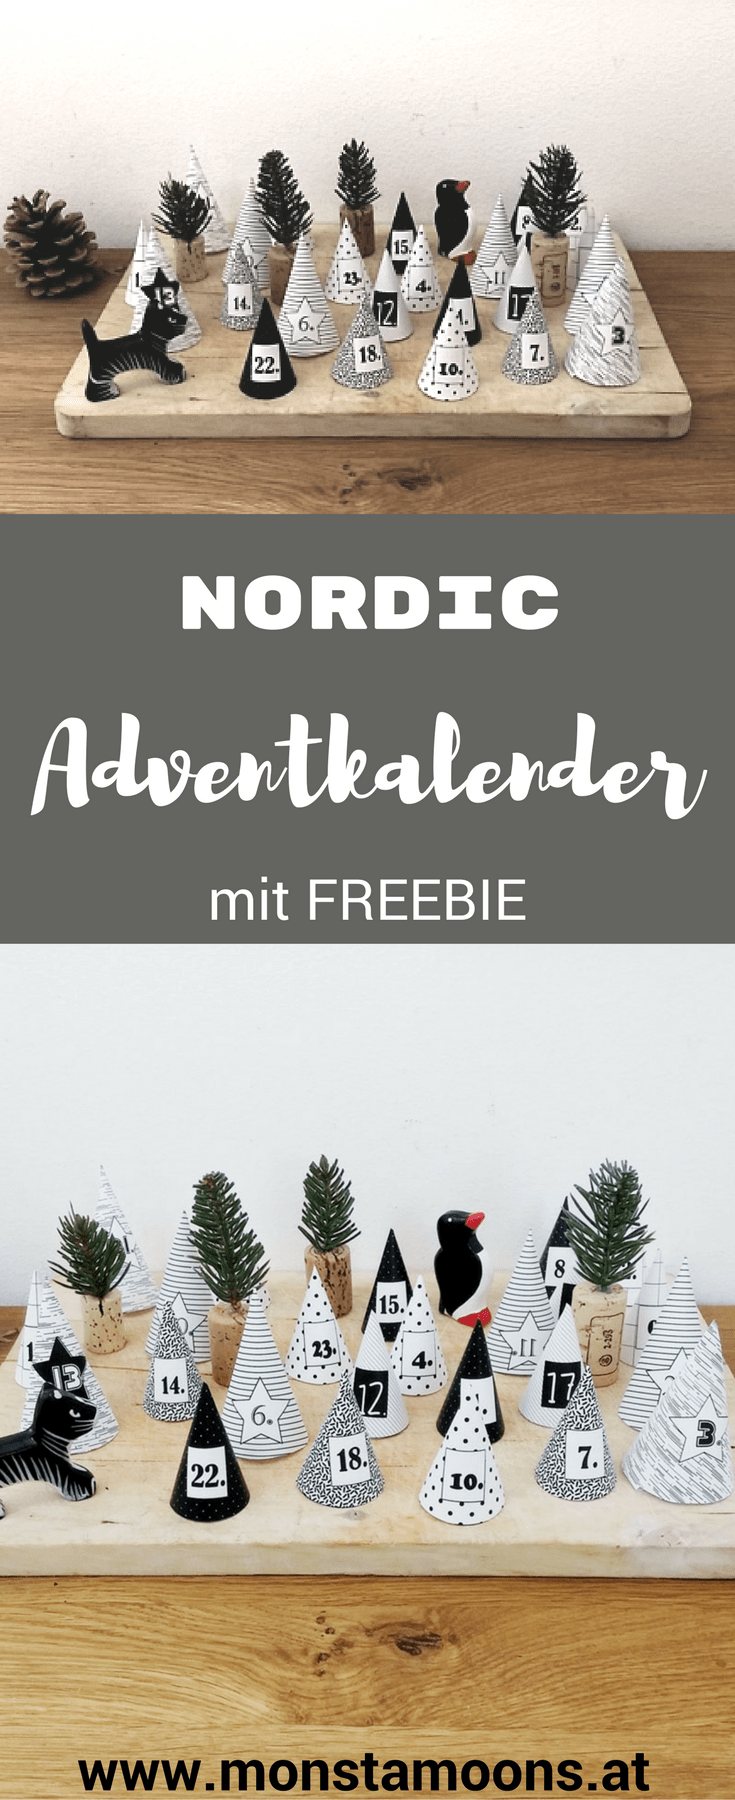 Nordic Adventkalender mit Freebie